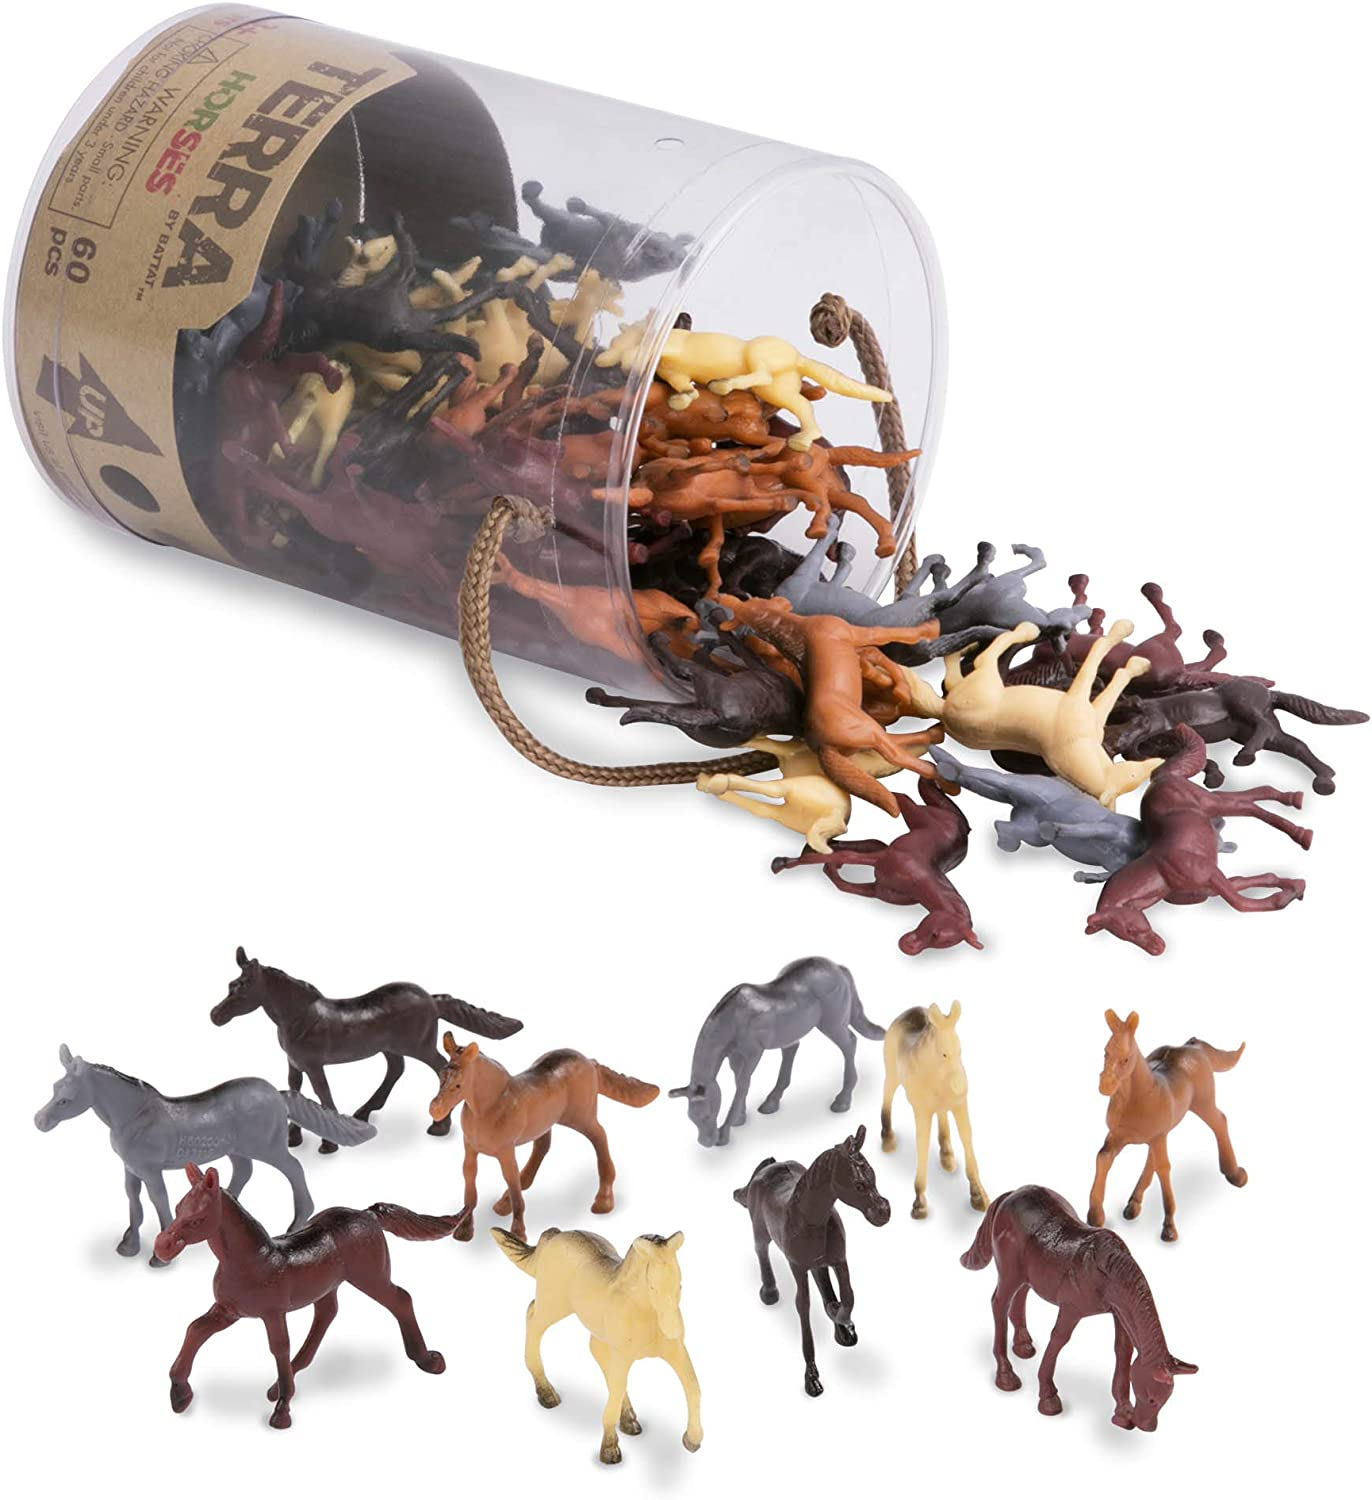 "Terra by Battat – Horses – Assorted Miniature Horse Toys & Cake Toppers For Kids 3+ (60 Pc), AN6038Z, 2"", Multi"